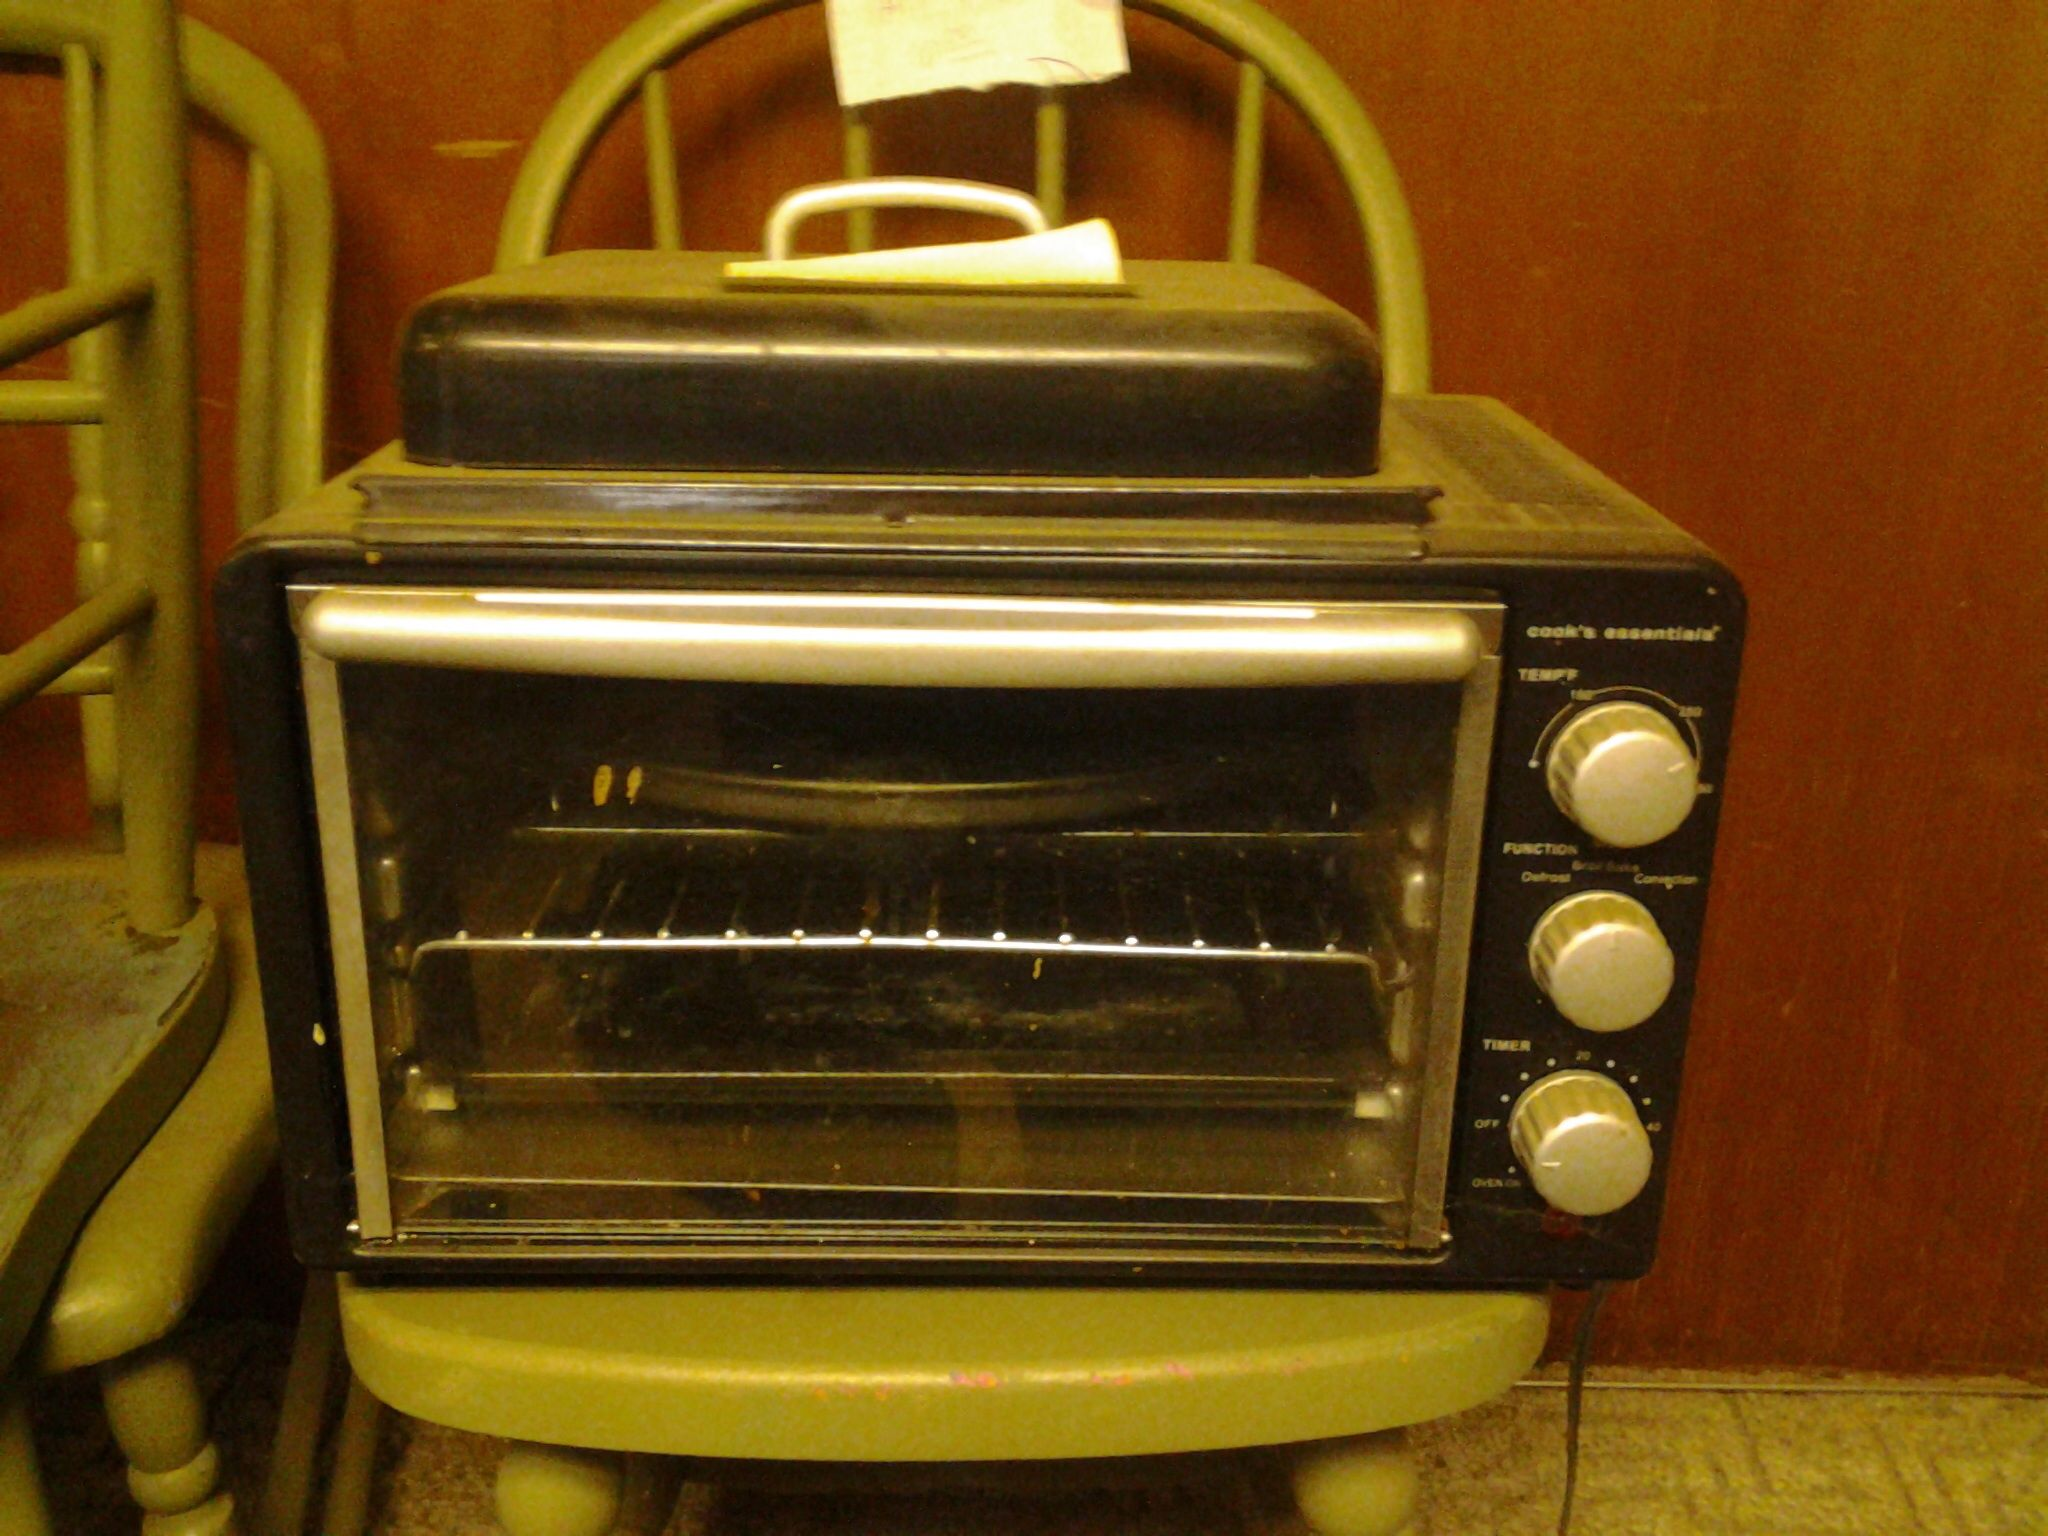 It in good shape 937!559 0378 toaster oven aaronstreeservicellc.com